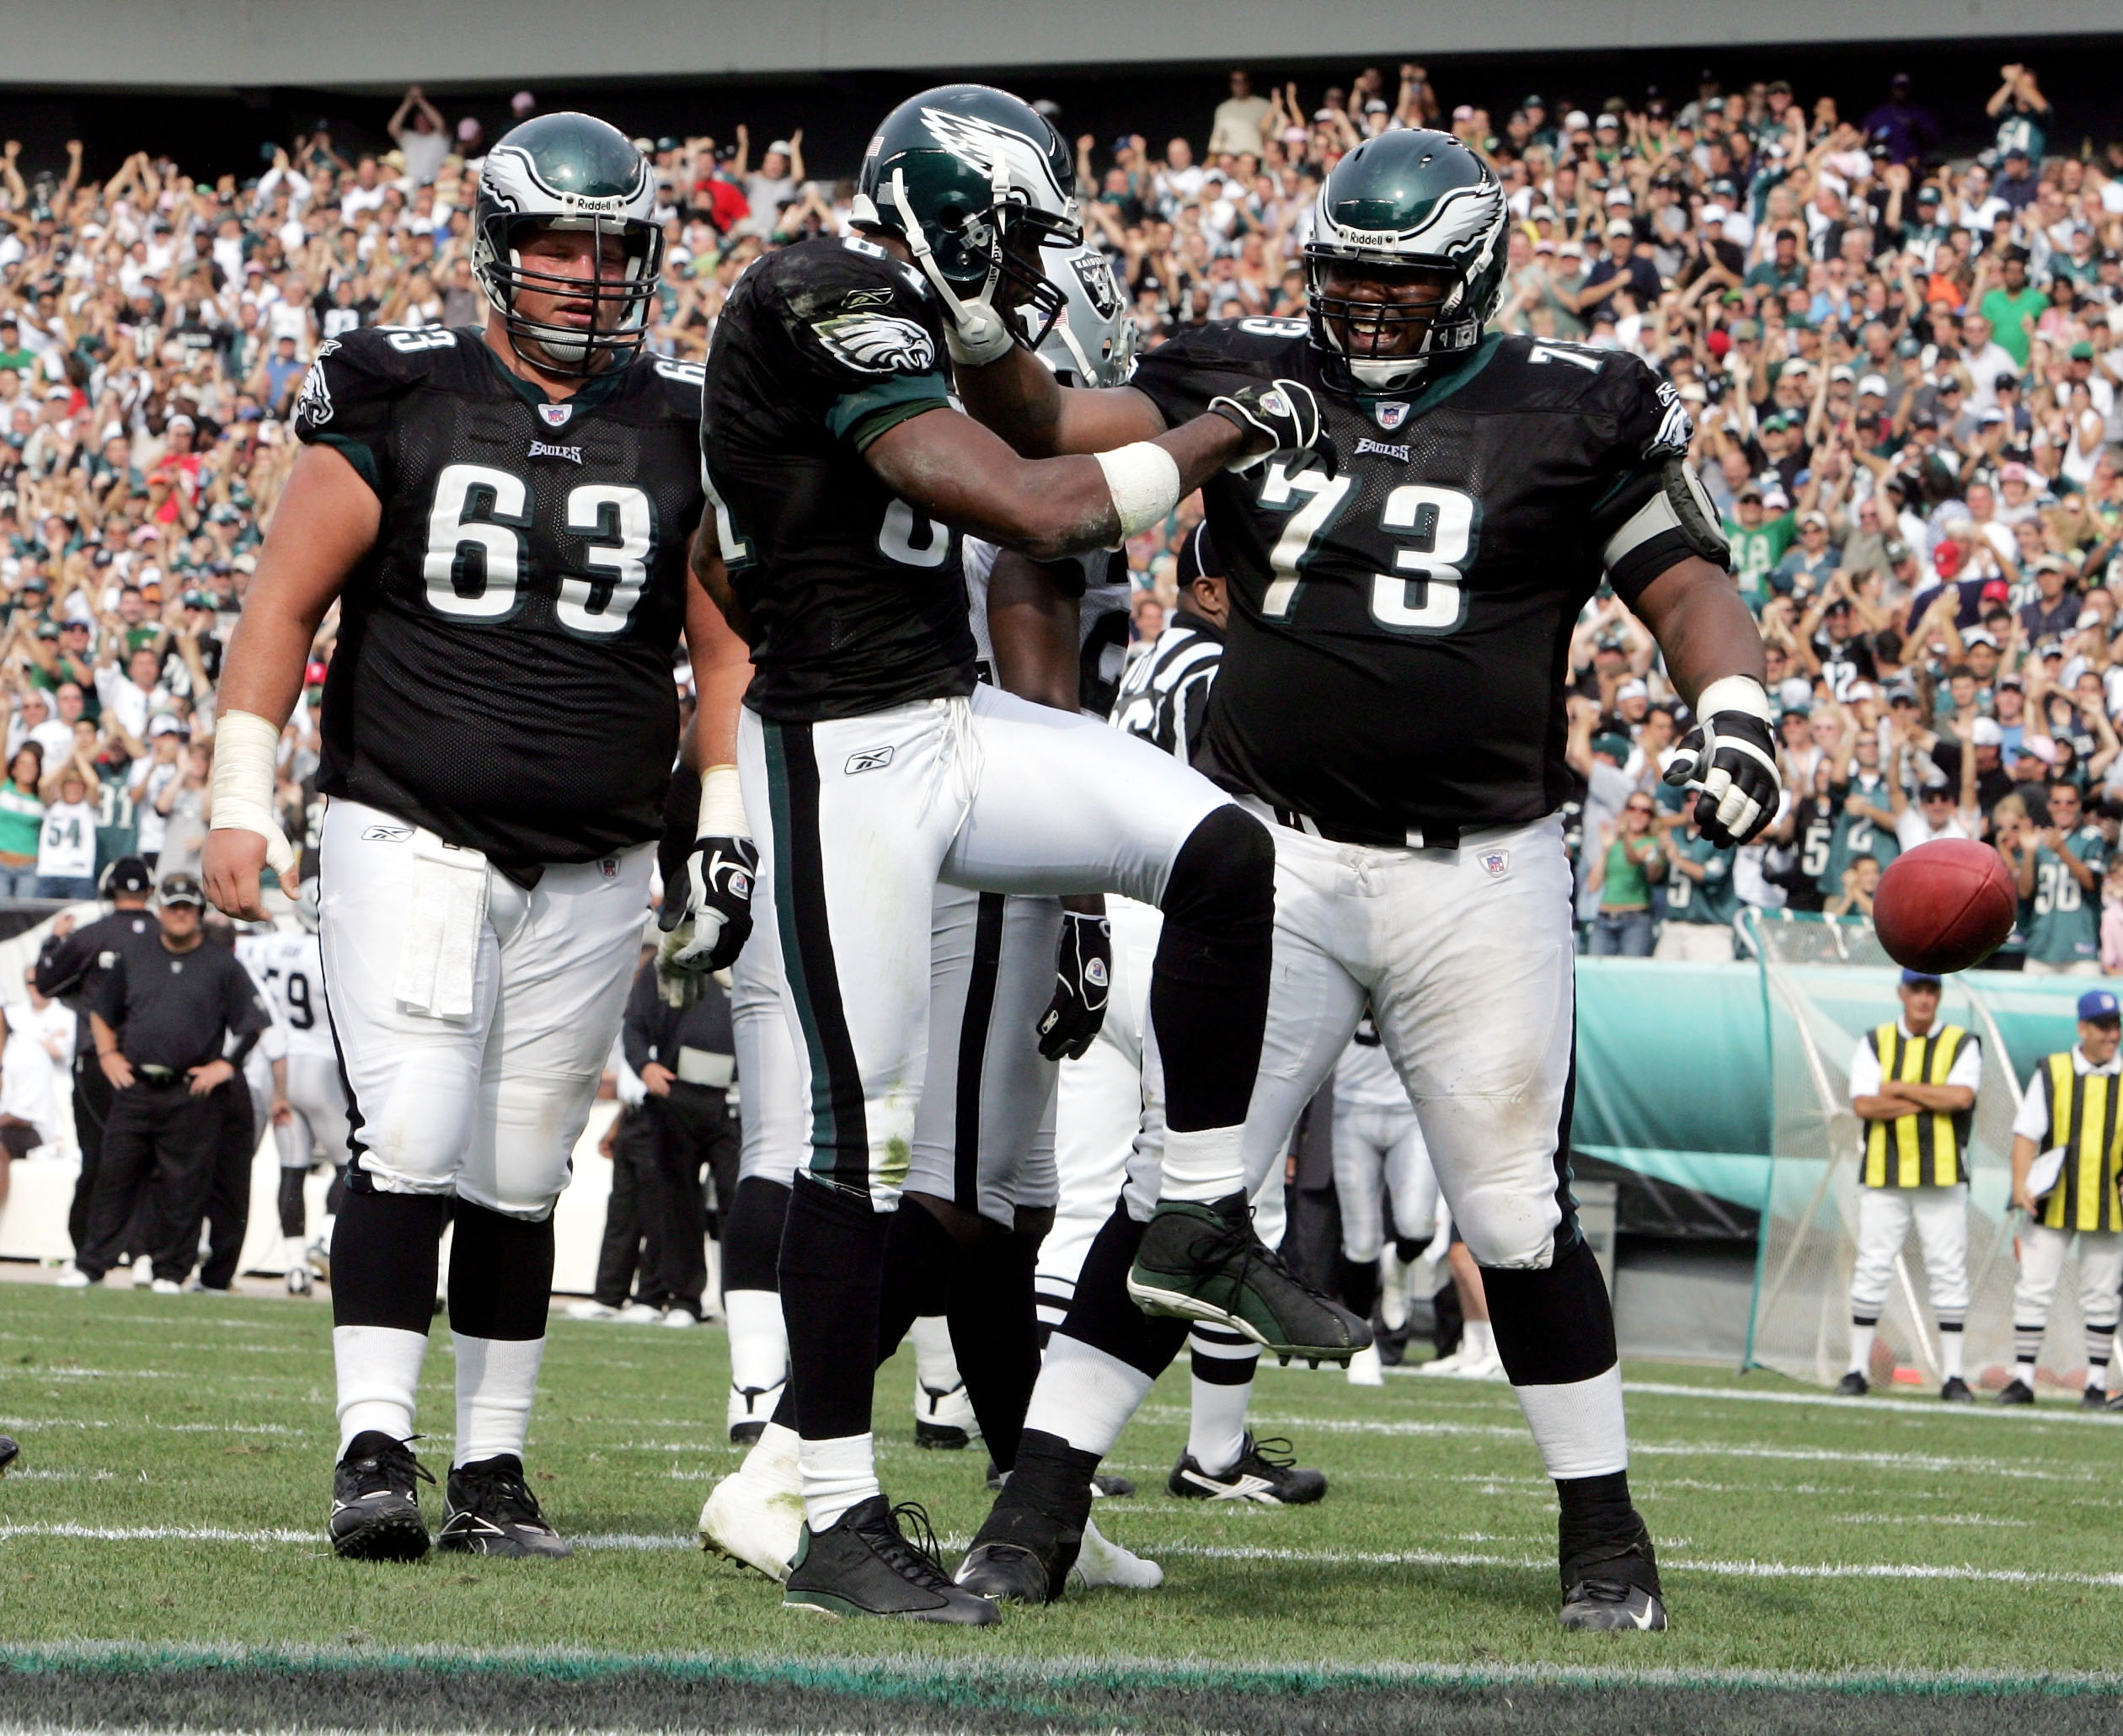 PHILADELPHIA - SEPTEMBER 25:  Wide receiver Terrell Owens #81 of the Philadelphia Eagles kicks the ball away as he celebrates his touchdown with teammates Hank Fraley #63 and Shawn Andrews #73 during the third quarter of their game against the Oakland Rai